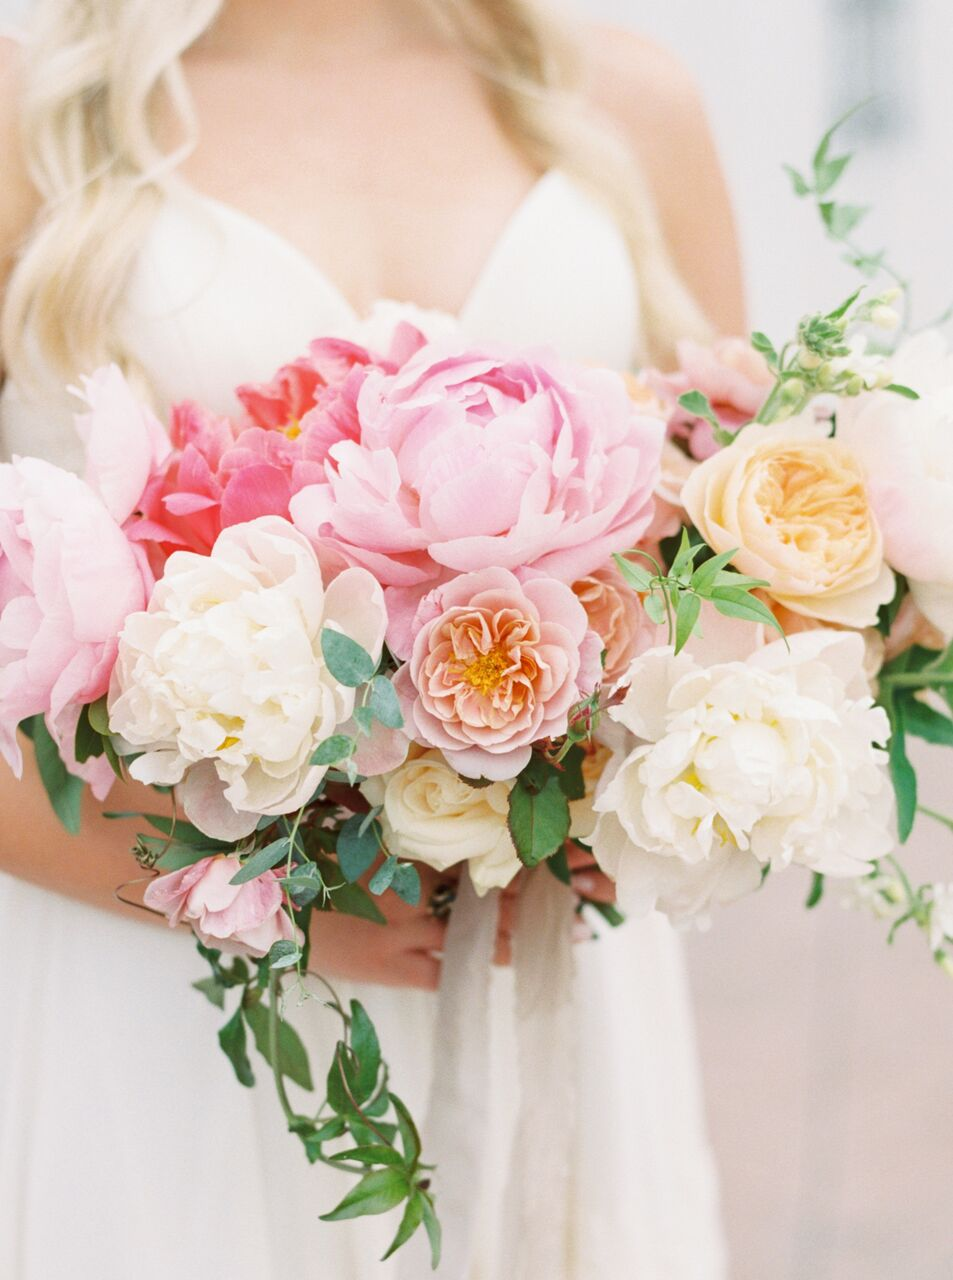 Pink And White Wedding Flowers Cheaper Than Retail Price Buy Clothing Accessories And Lifestyle Products For Women Men